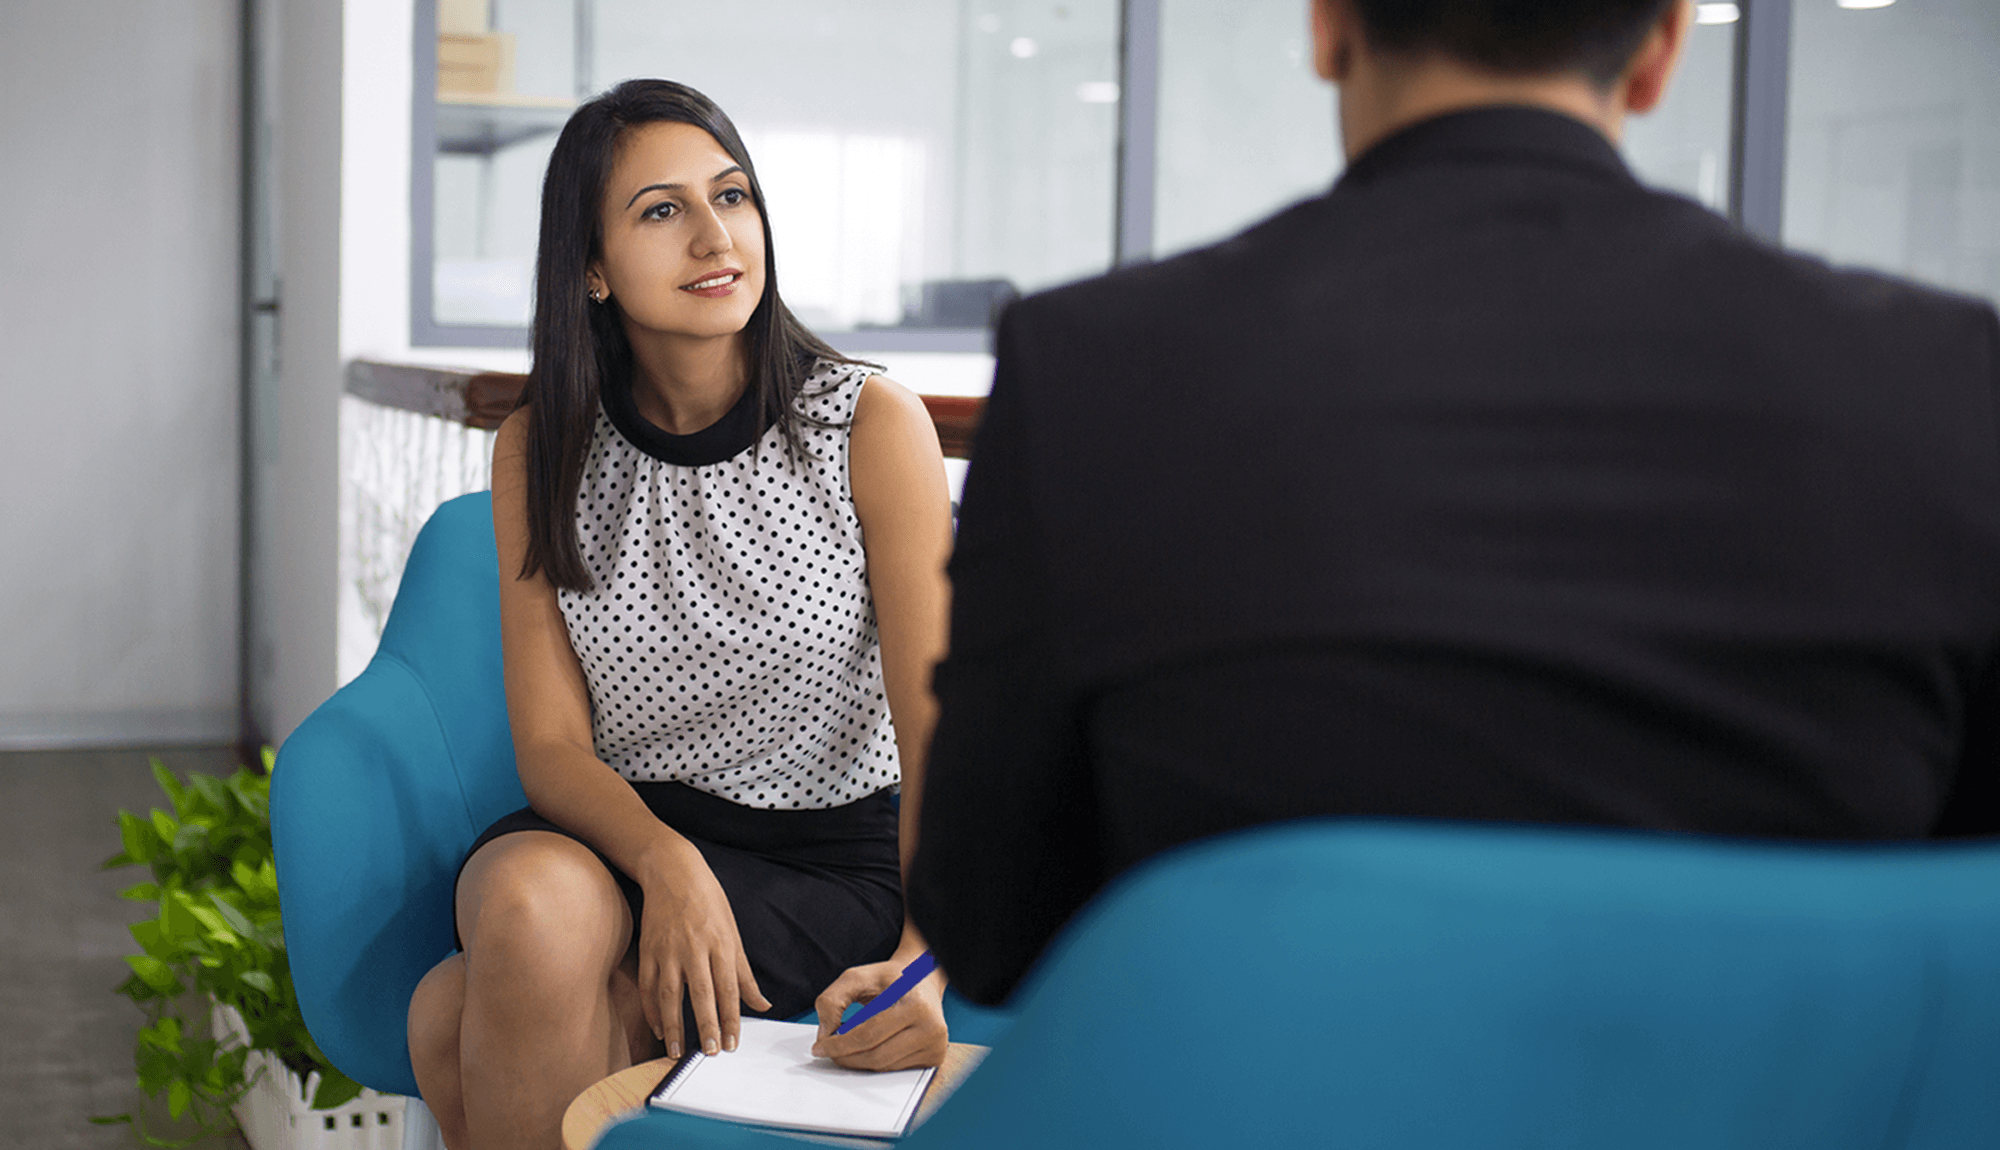 mature human resource management woman interviewing a person